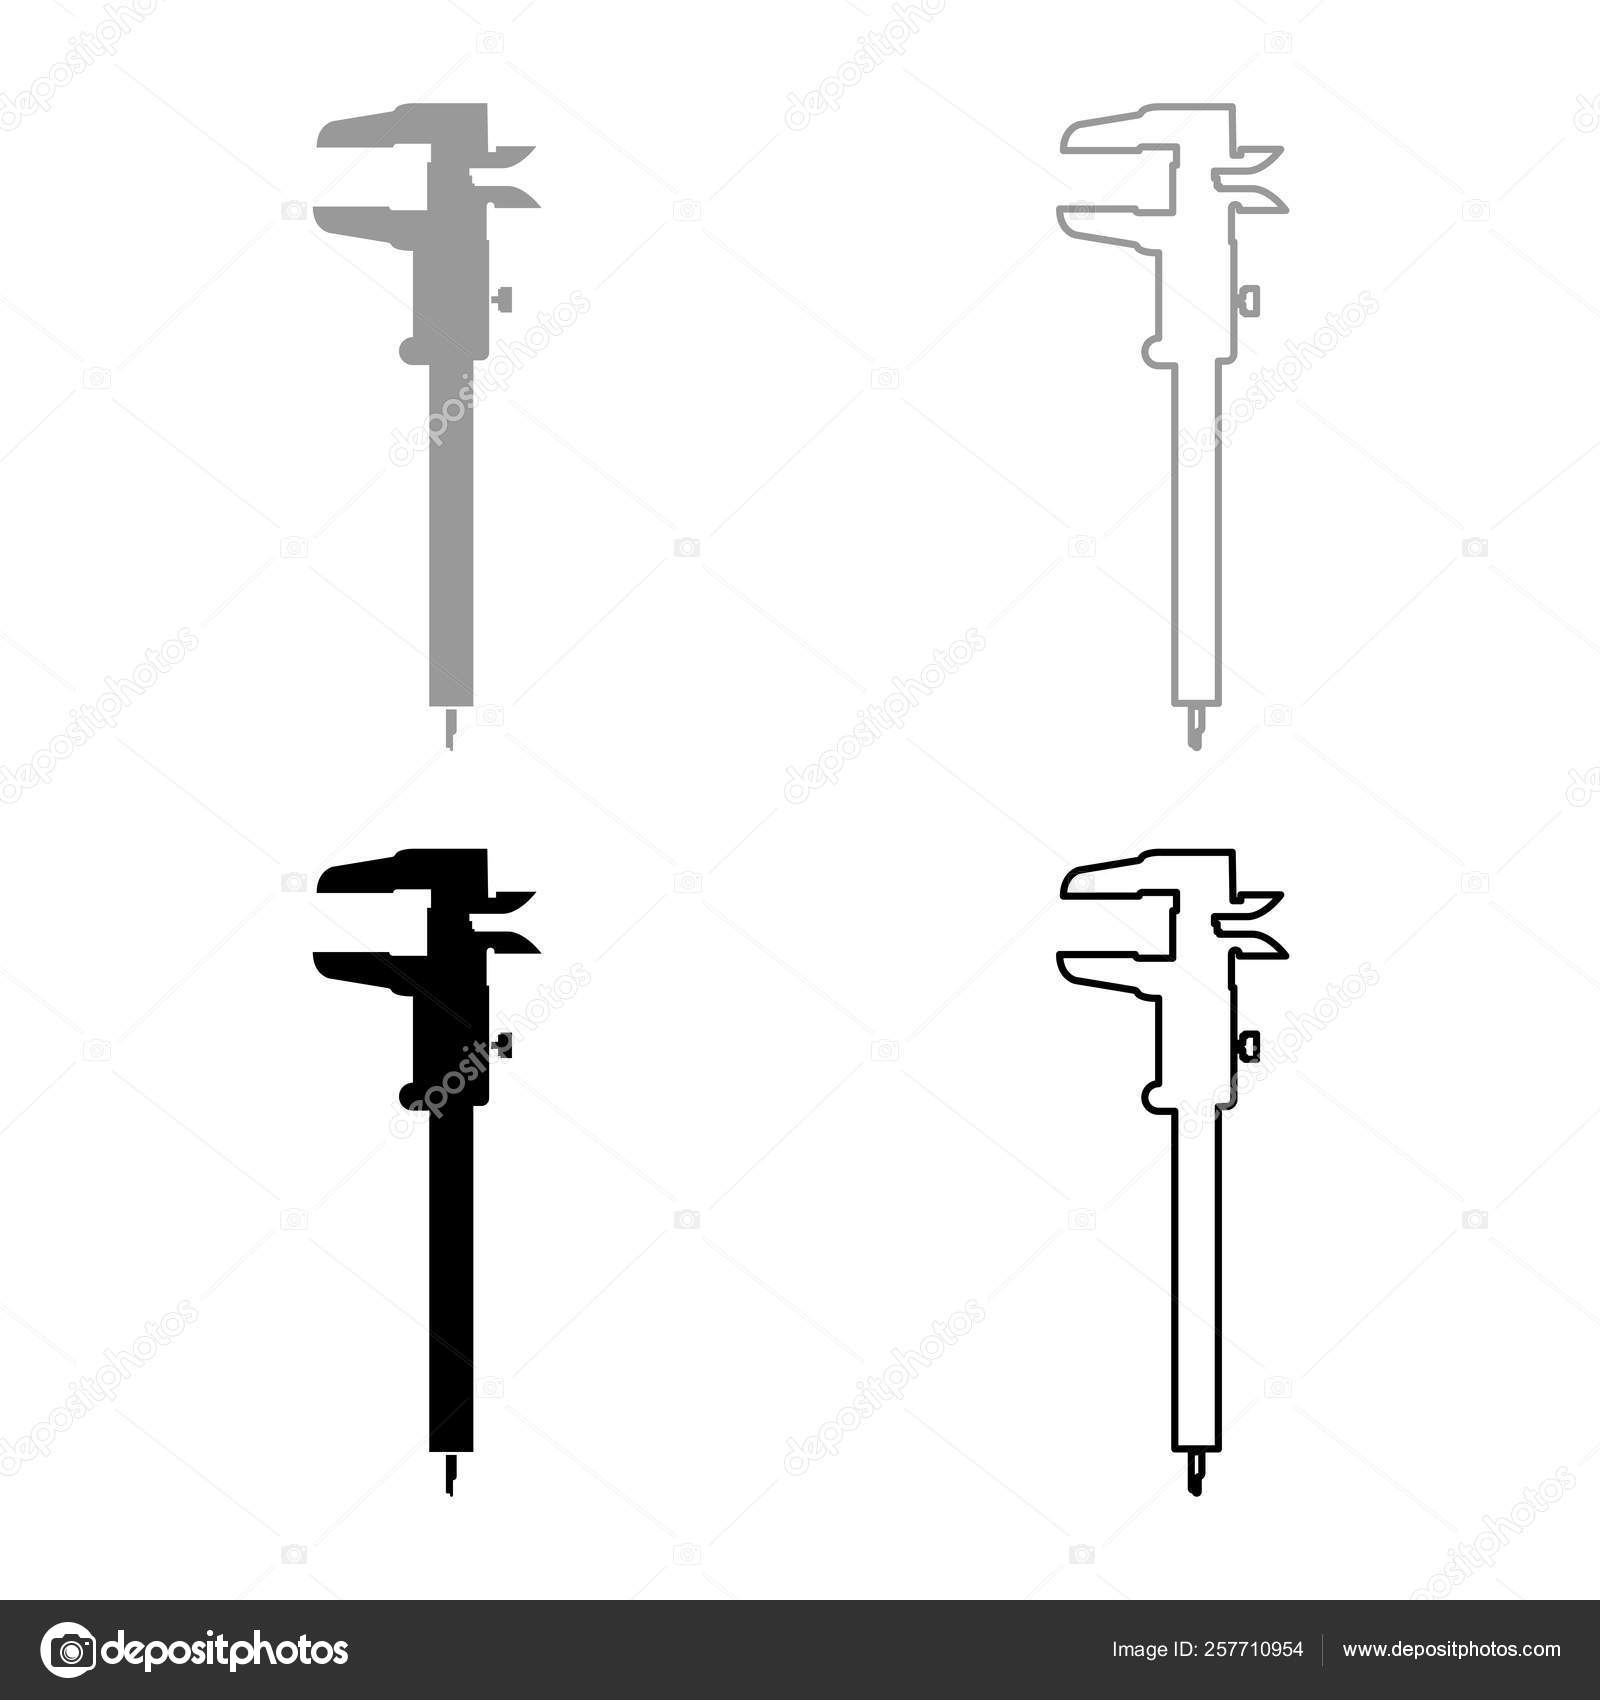 caliper hand caliper sliding caliper vernier caliper caliper gage slide  gage trammel icon set black grey color vector illustration flat style simple  image–